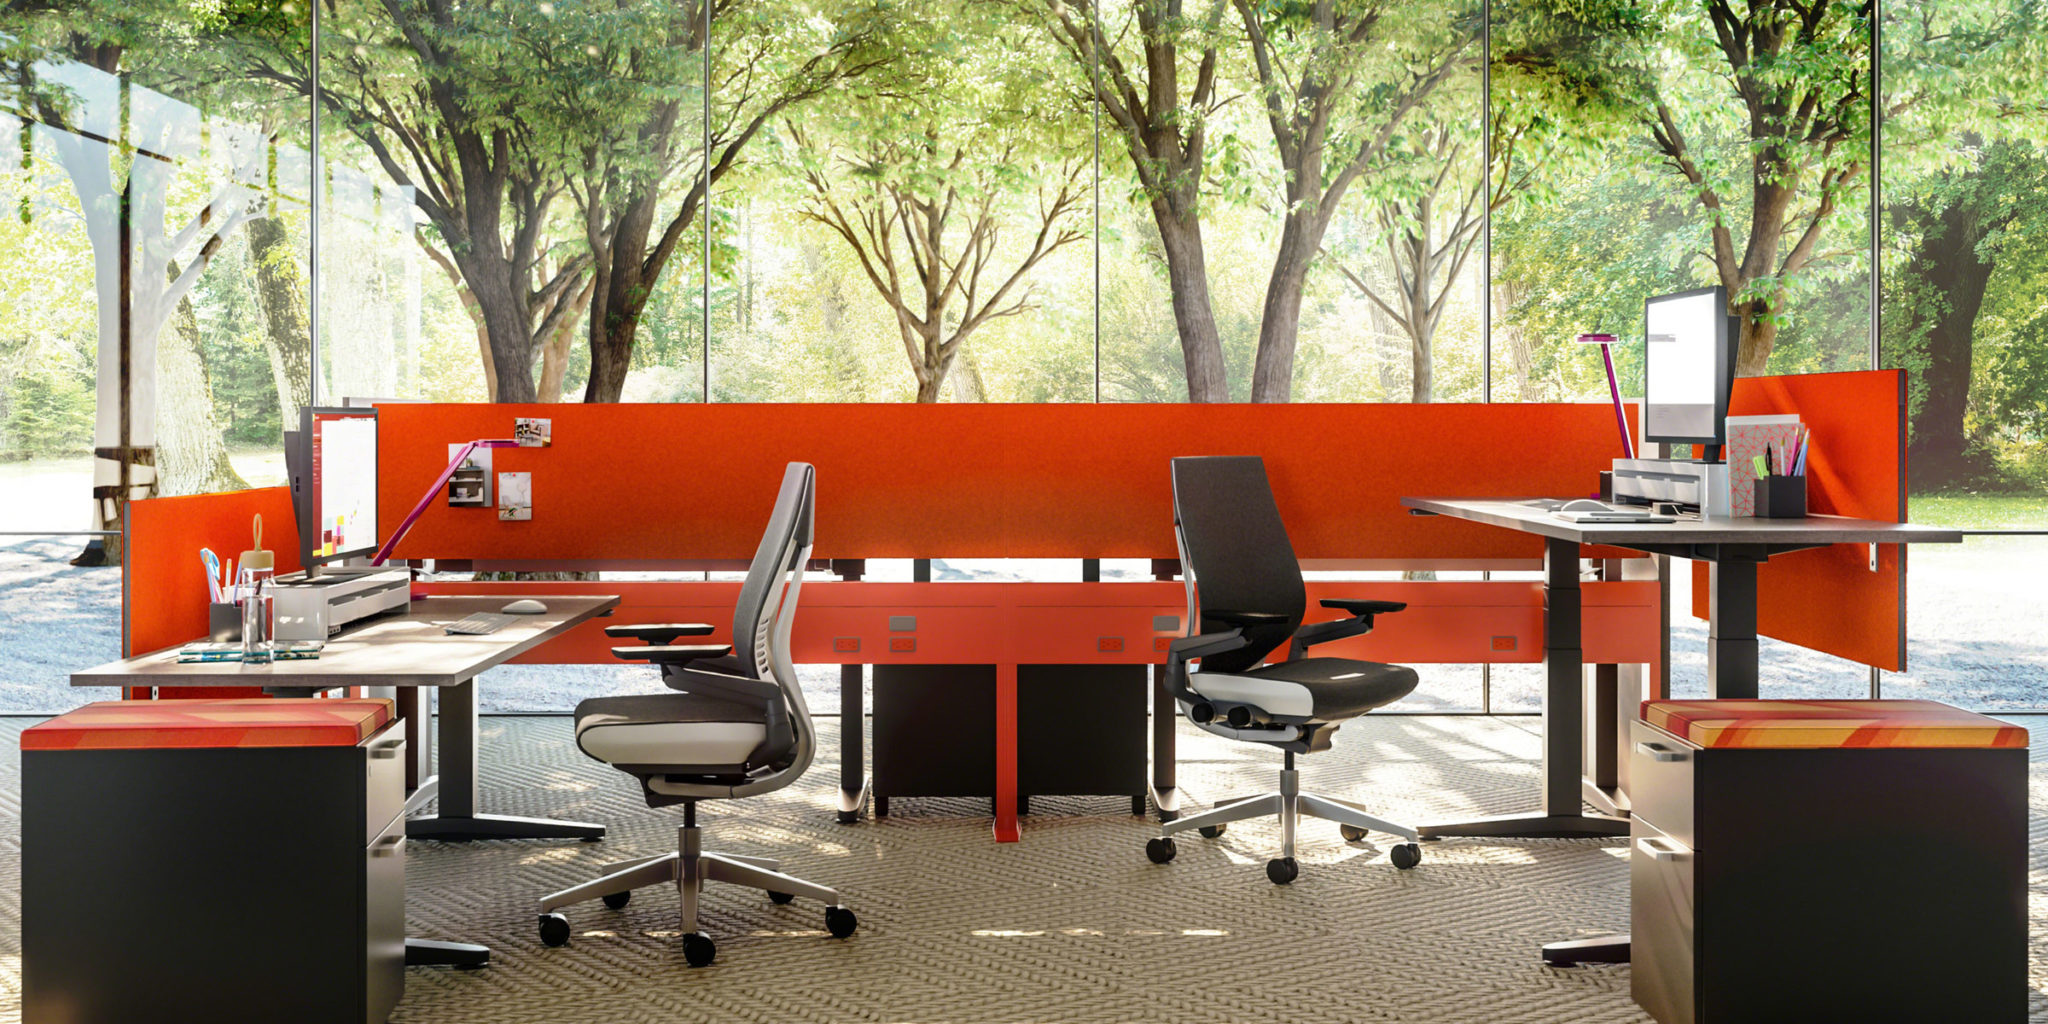 Enjoyable Afd Contract Furniture Corporate Office Furniture Ny Download Free Architecture Designs Ogrambritishbridgeorg